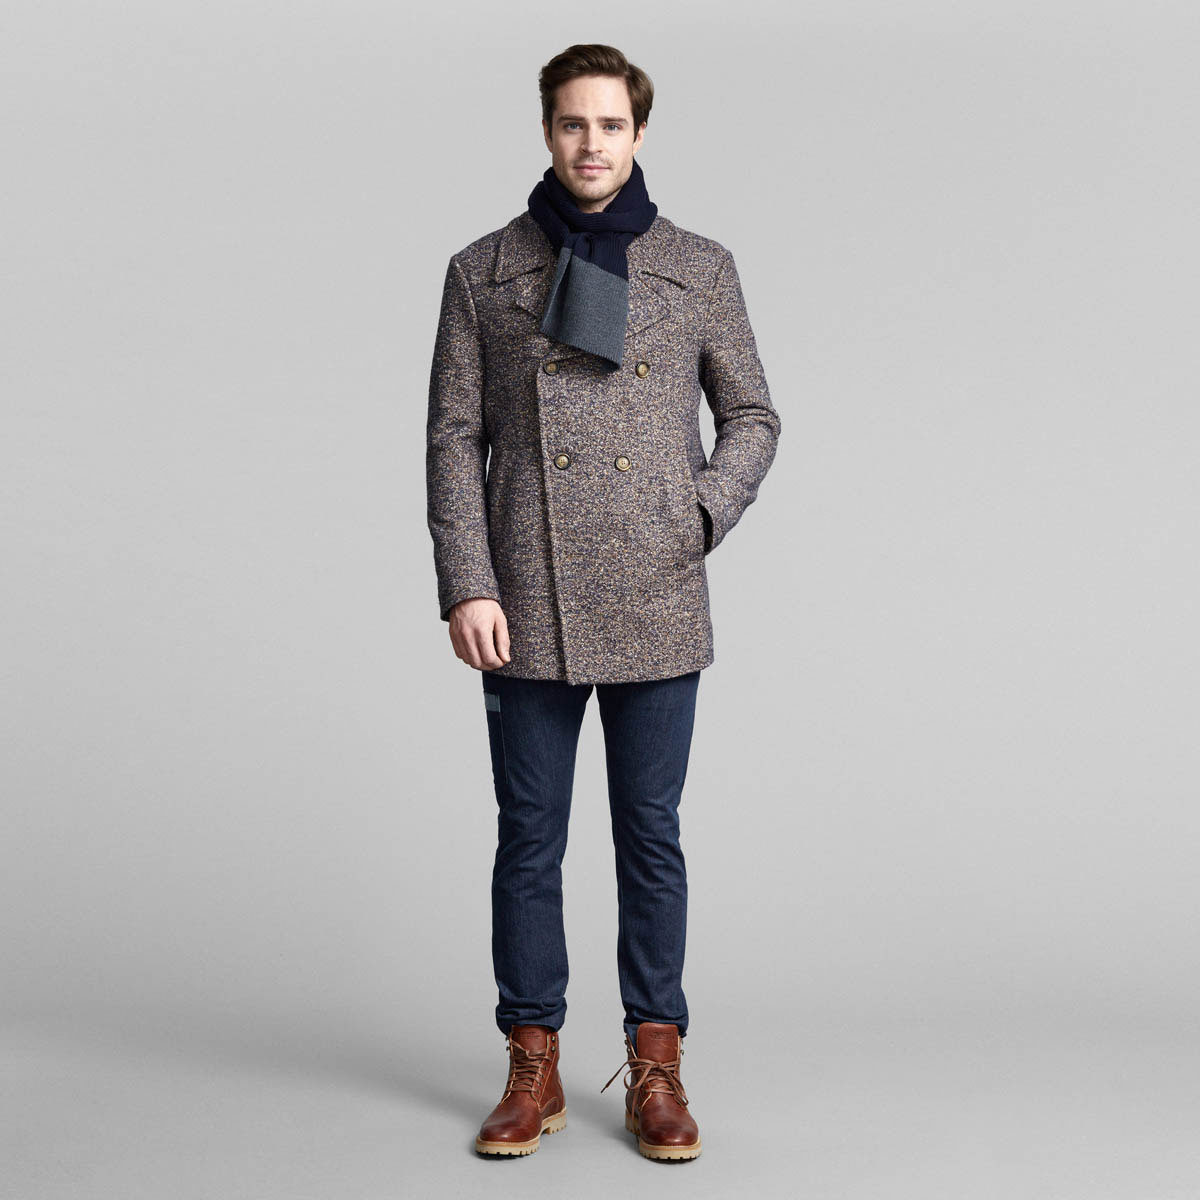 FRENN-Fall-Winter-2015-2016-Mens-Lookbook-3